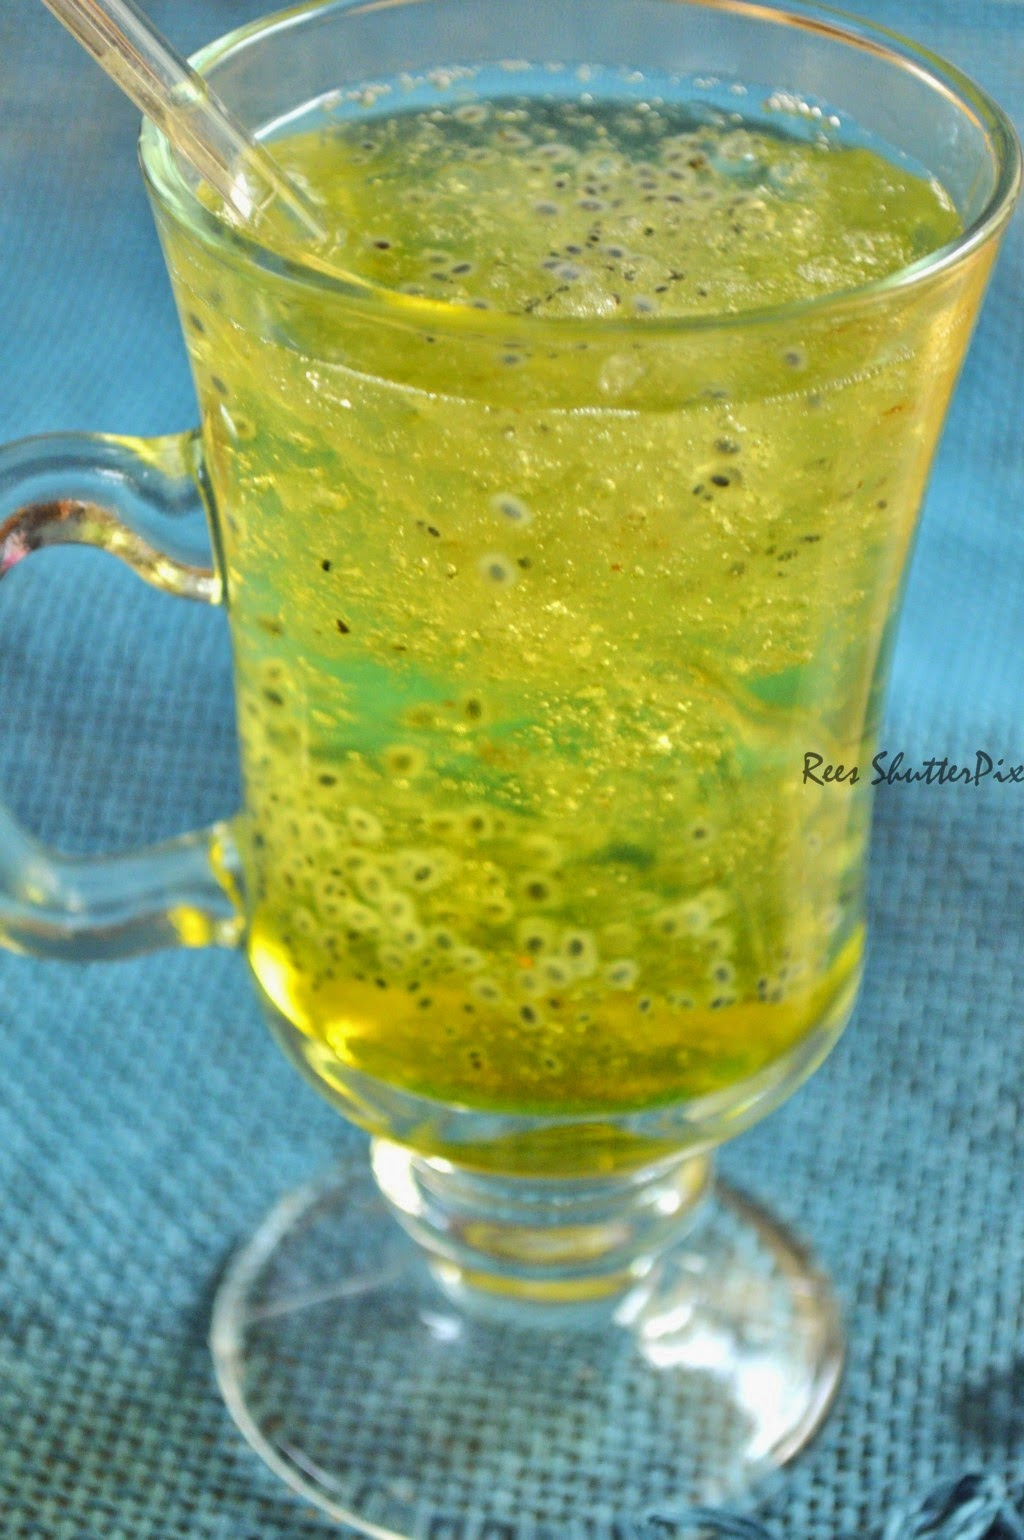 badam pisin drink,weight gain drink, kids, badam pisin sherbet, nannari syrup juice, sabja seeds, basil